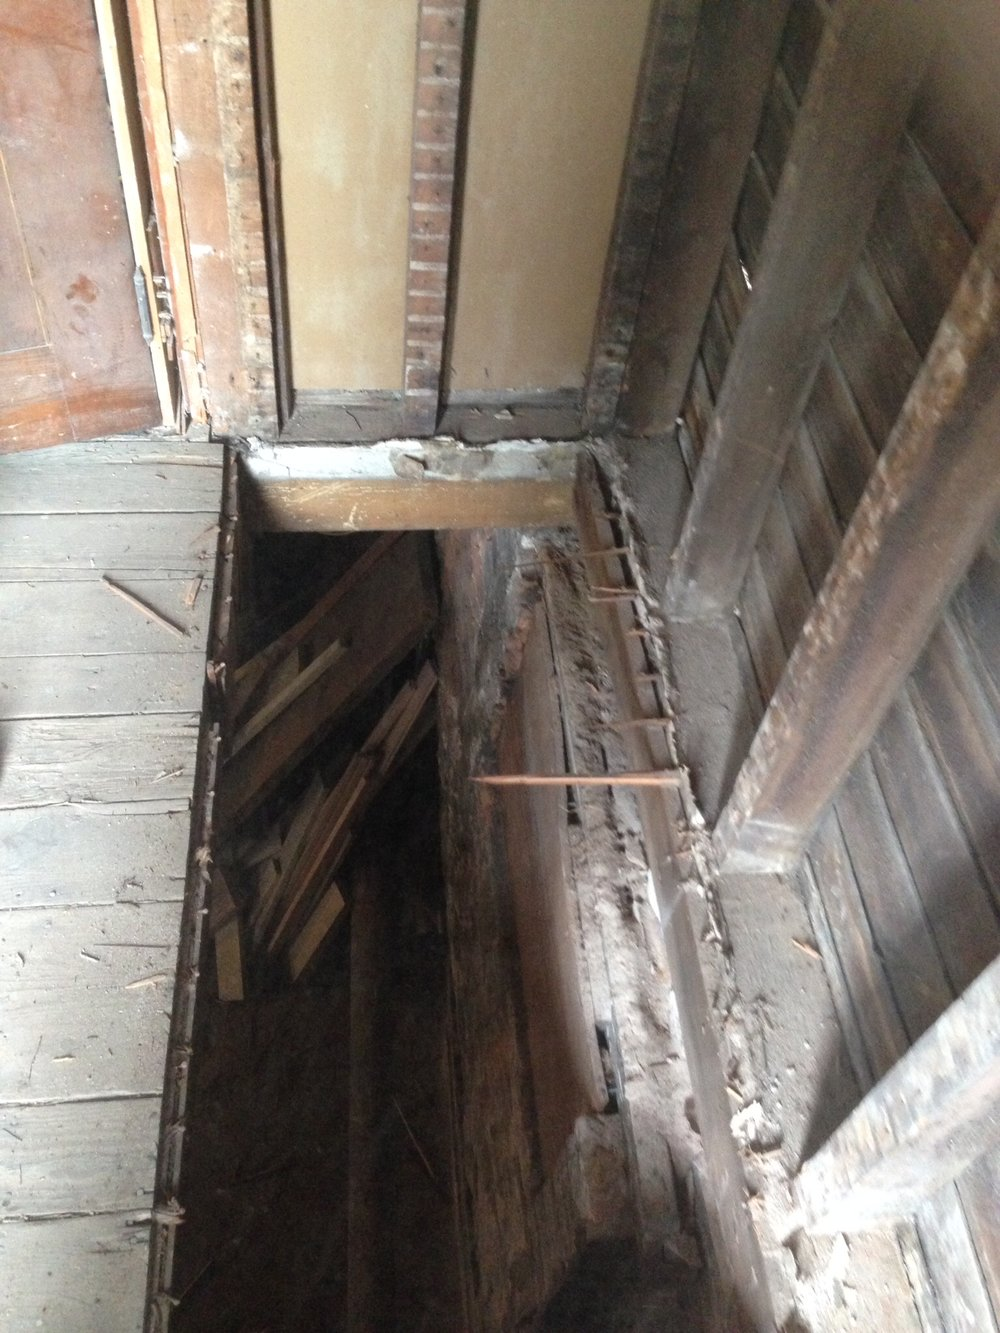 subfloor and framing needed to be replaced. This was an old staircase to the basement.